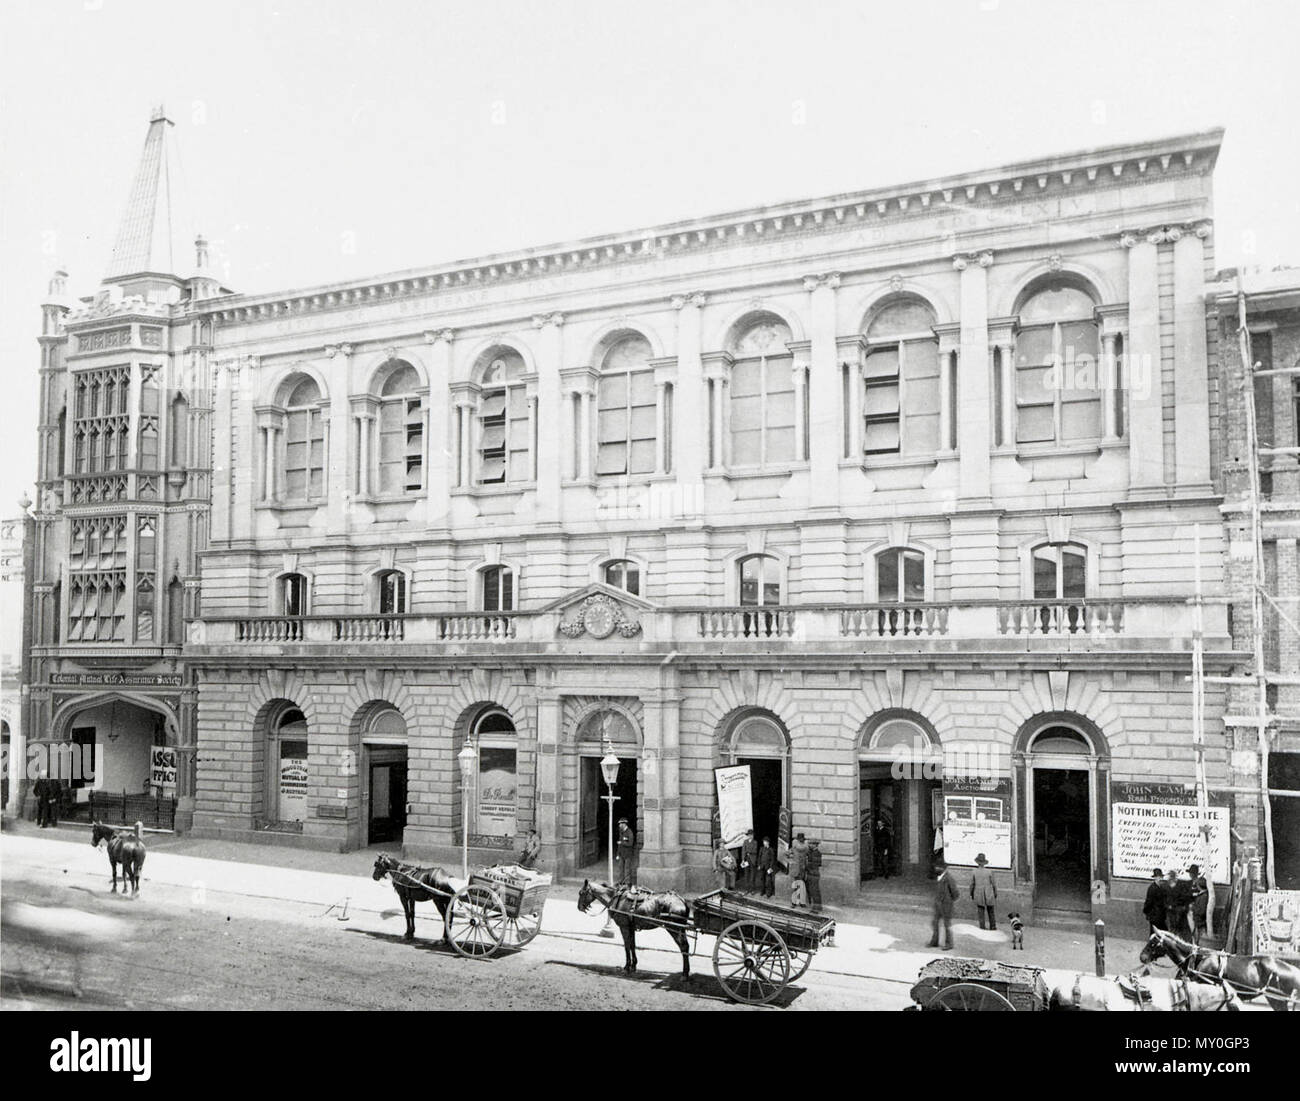 Brisbane's Old Town Hall, Queen St. The Courier Mail Sat 27 Nov 1937  Old Town Hall a Link With Early Days  The old Town Hall was completed in 1865 at a cost of £25,000, and the civic fathers of that distant day had every reason for self-gratification.  Every to-day the old building is regarding as one of the finest examples of Italian Renaissance architecture to be seen in Australia. For more than 70 years it classic facade has looked out upon an ever-changing scene in Queen-street. Through the decades demolition and reconstruction attended the relentless march of time.   When the freestone f Stock Photo